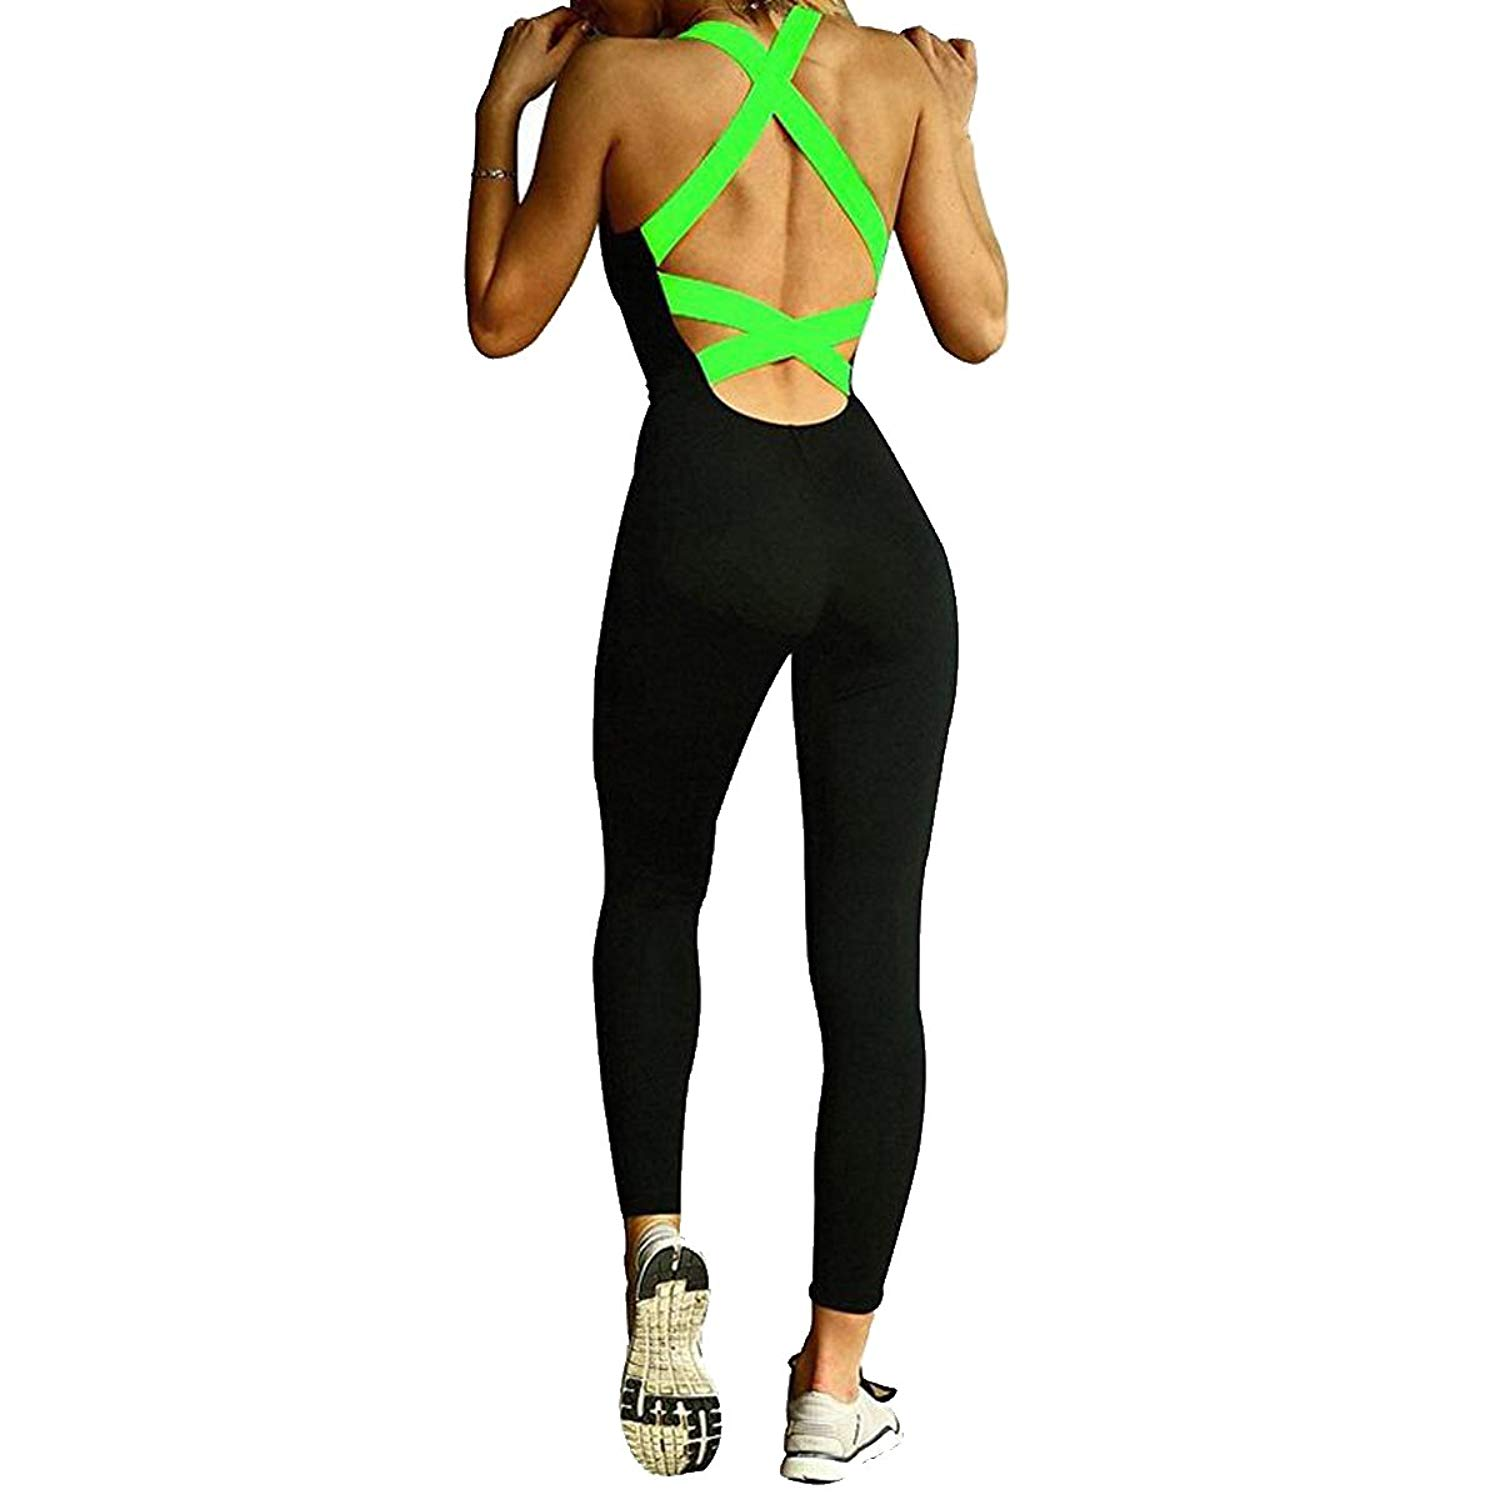 66b67cc1cf5 Get Quotations · Leezeshaw Women s Skinny Tight Bandage Sports Yoga Pants  Jumpsuits Rompers Playsuit